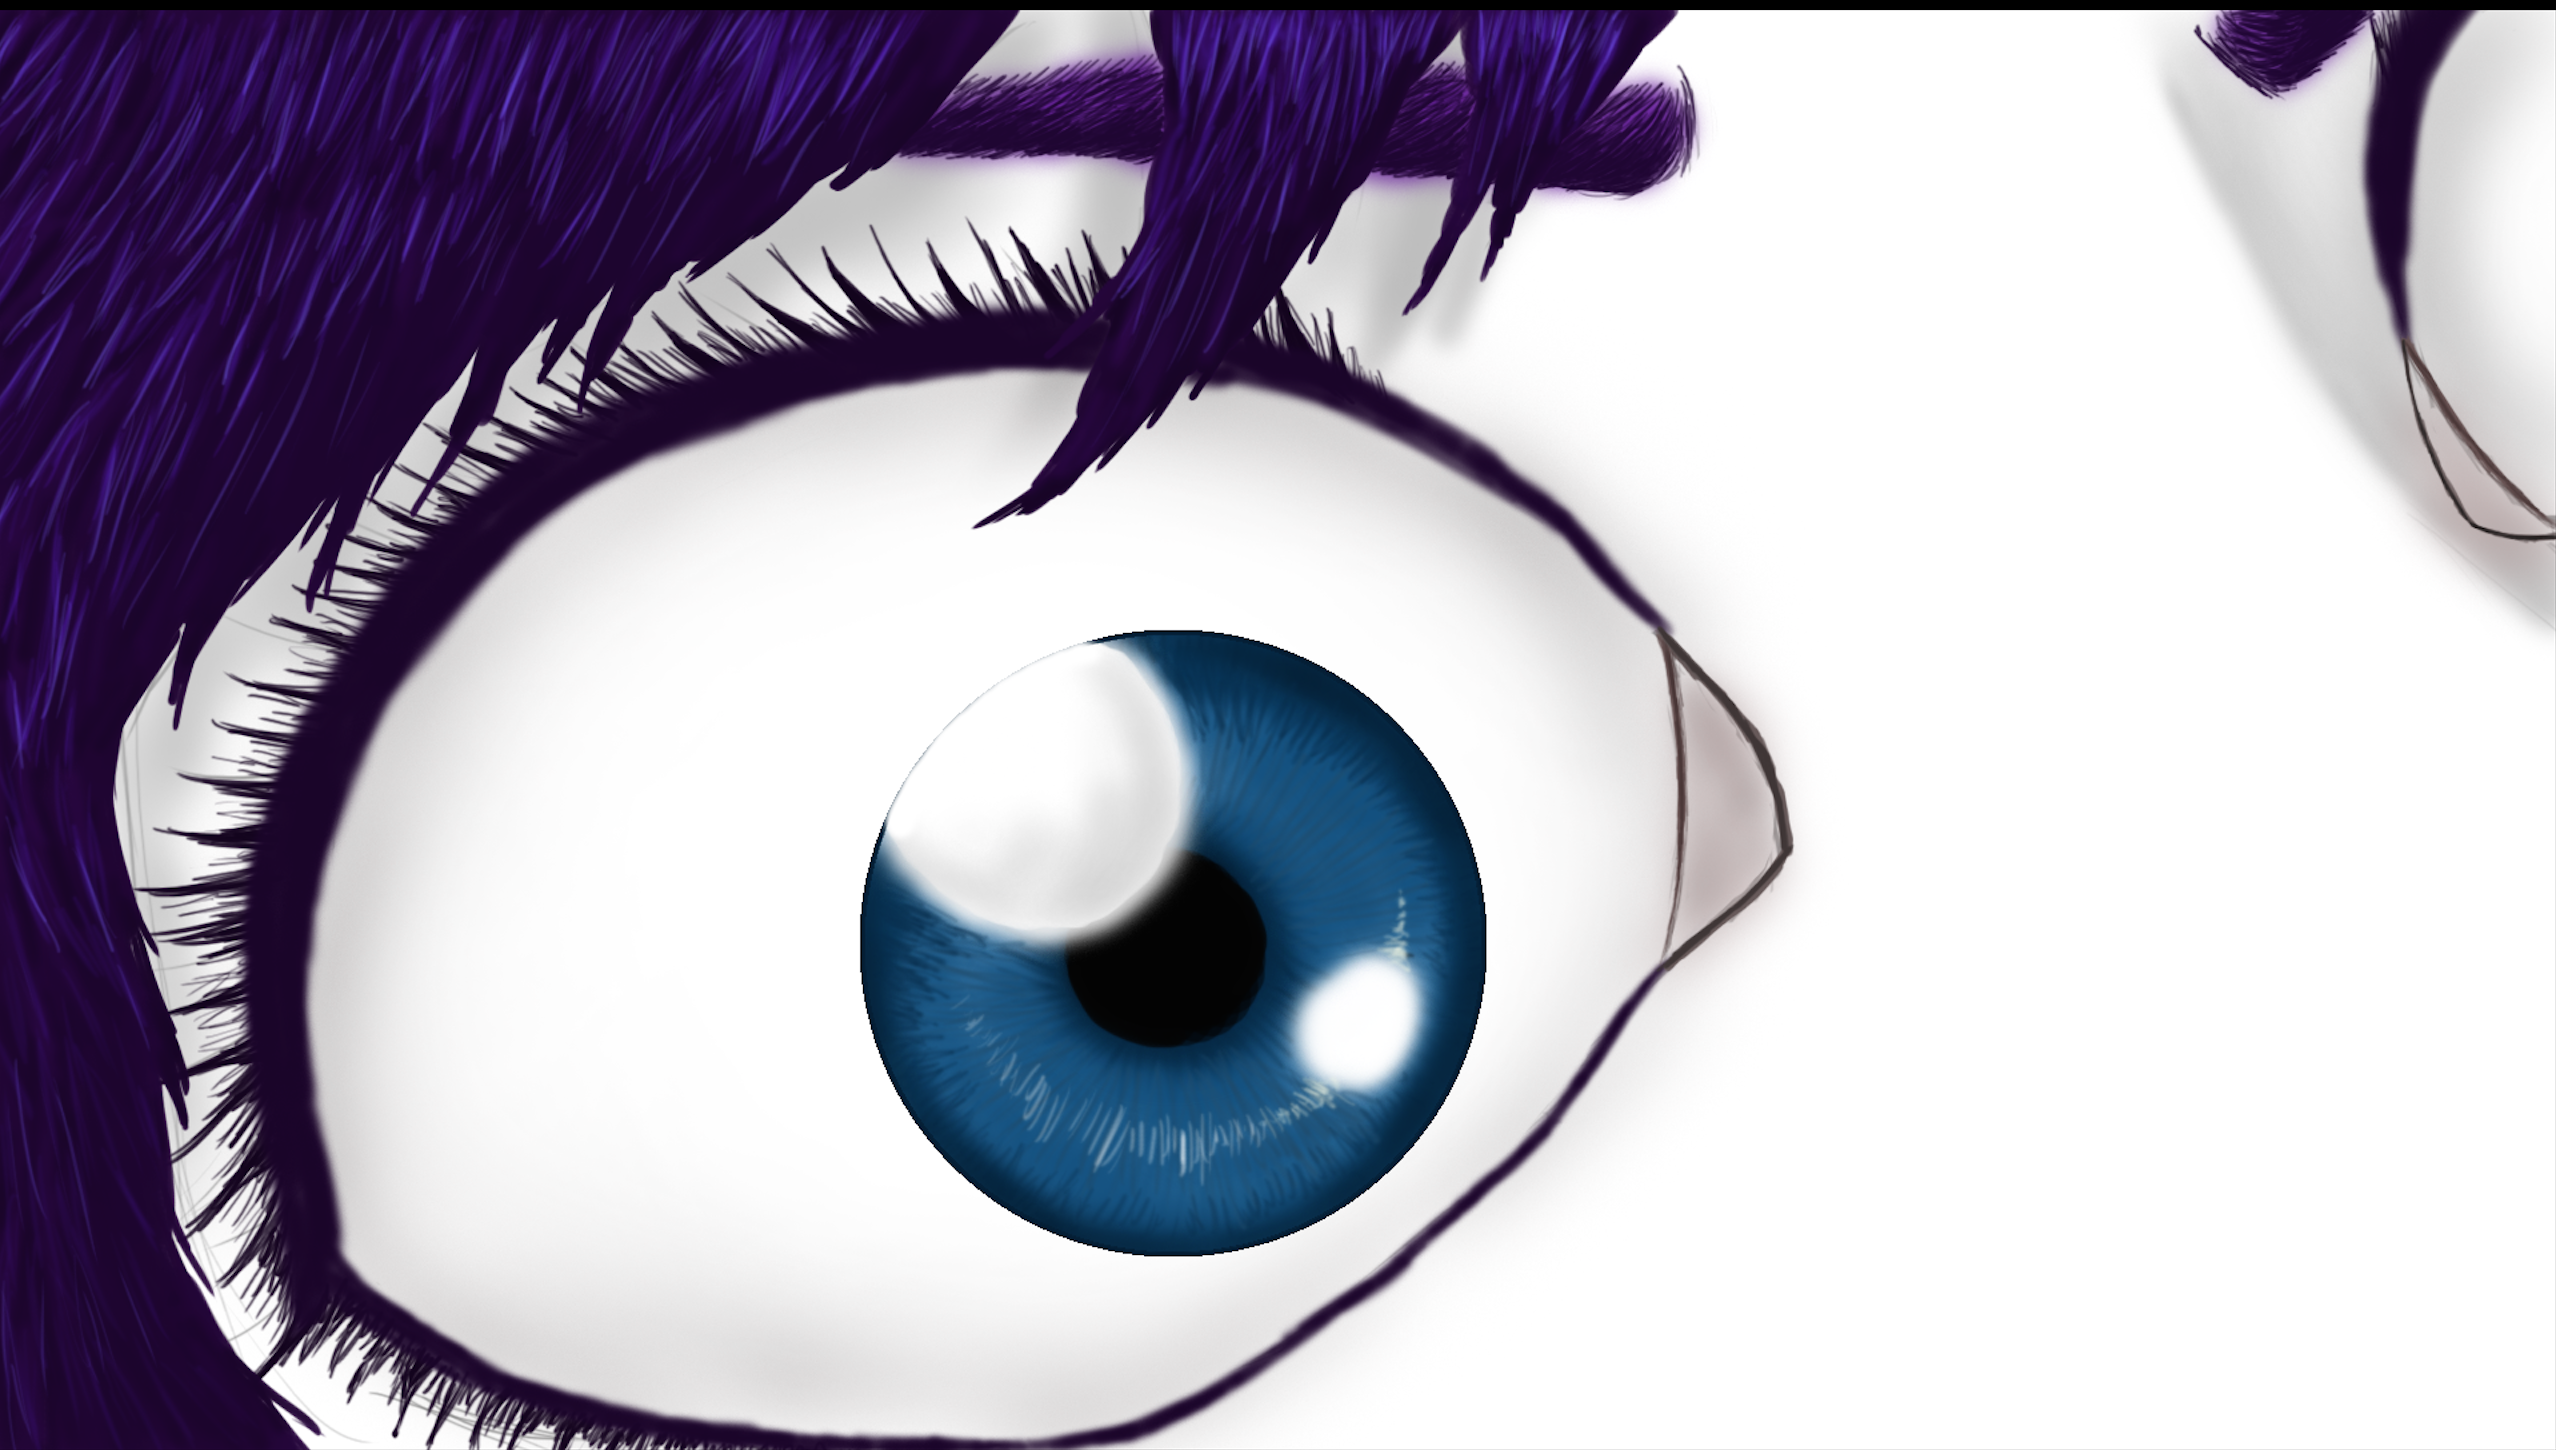 A dramatic eye shot made in photoshop by MrMarvellouss on DeviantArt